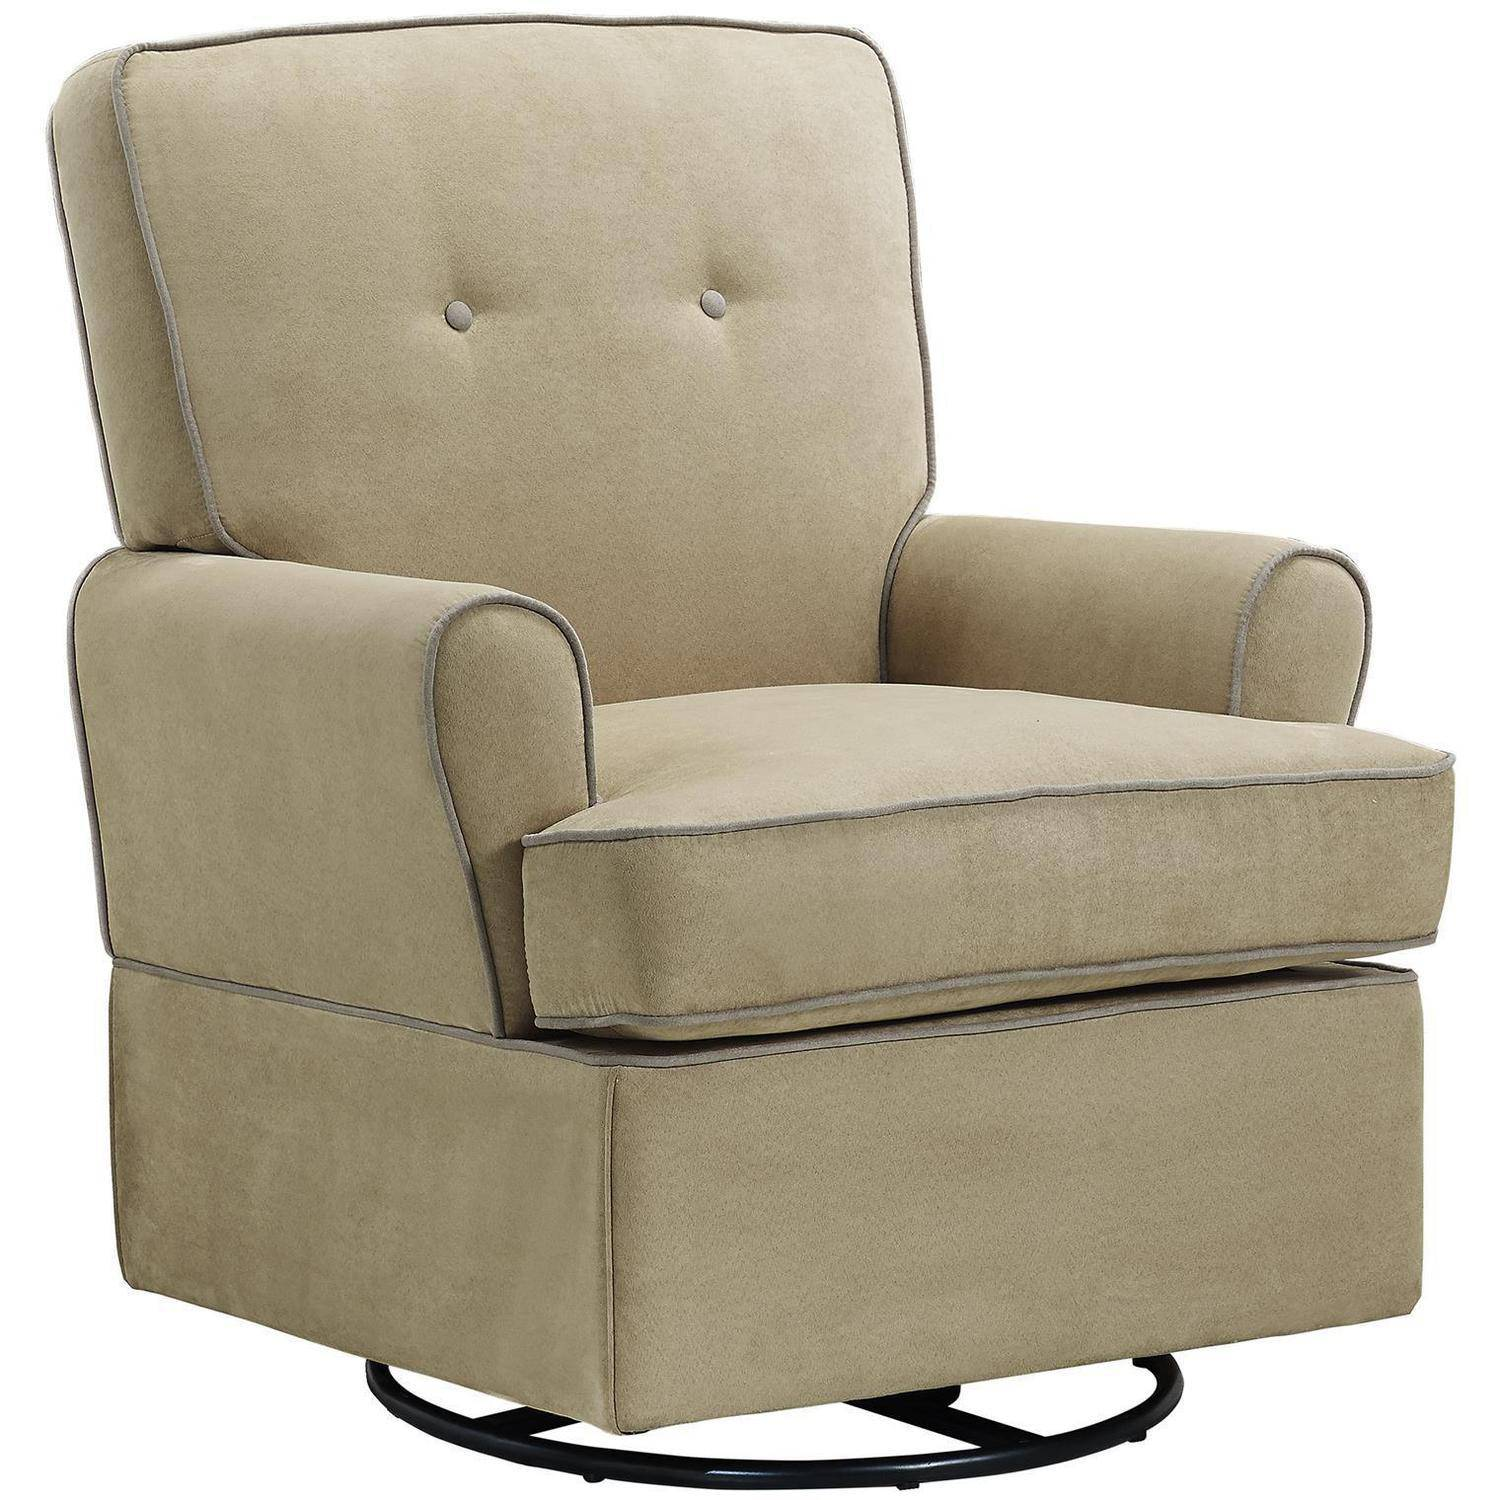 Baby Relax Tinsley Swivel Glider Beige by Baby Relax